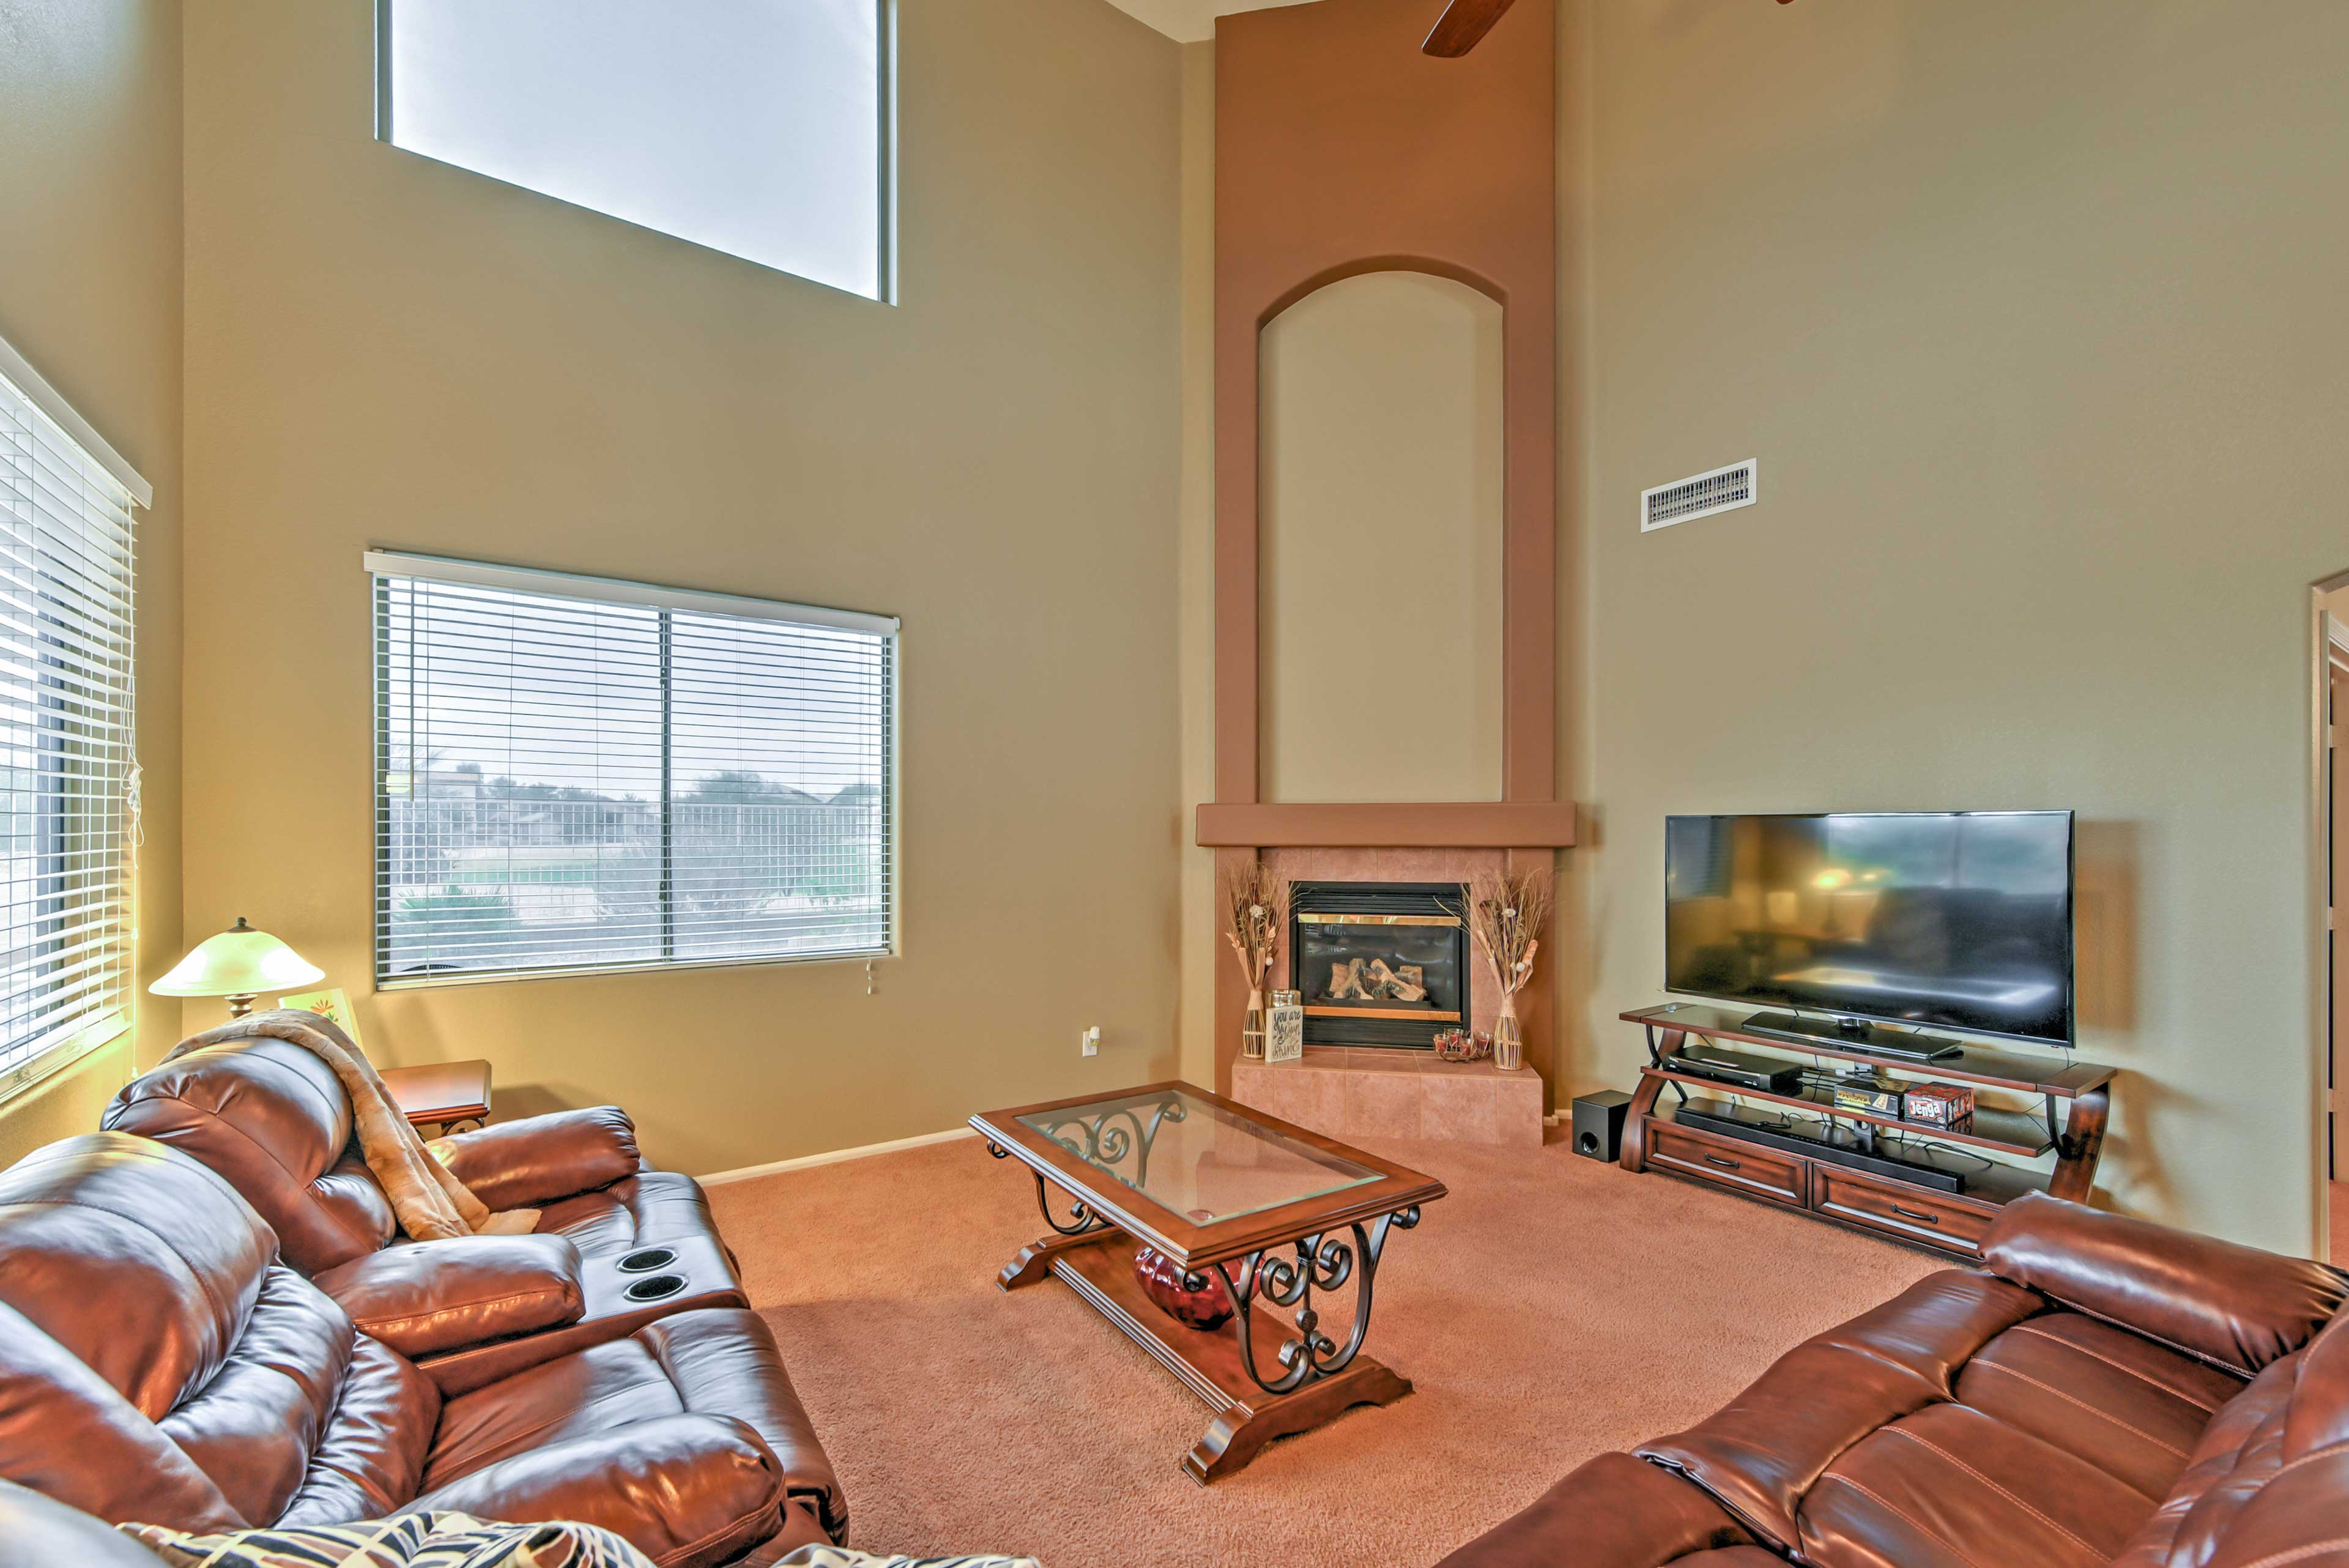 All 8 guests in your travel group can kick back and relax in the living room.